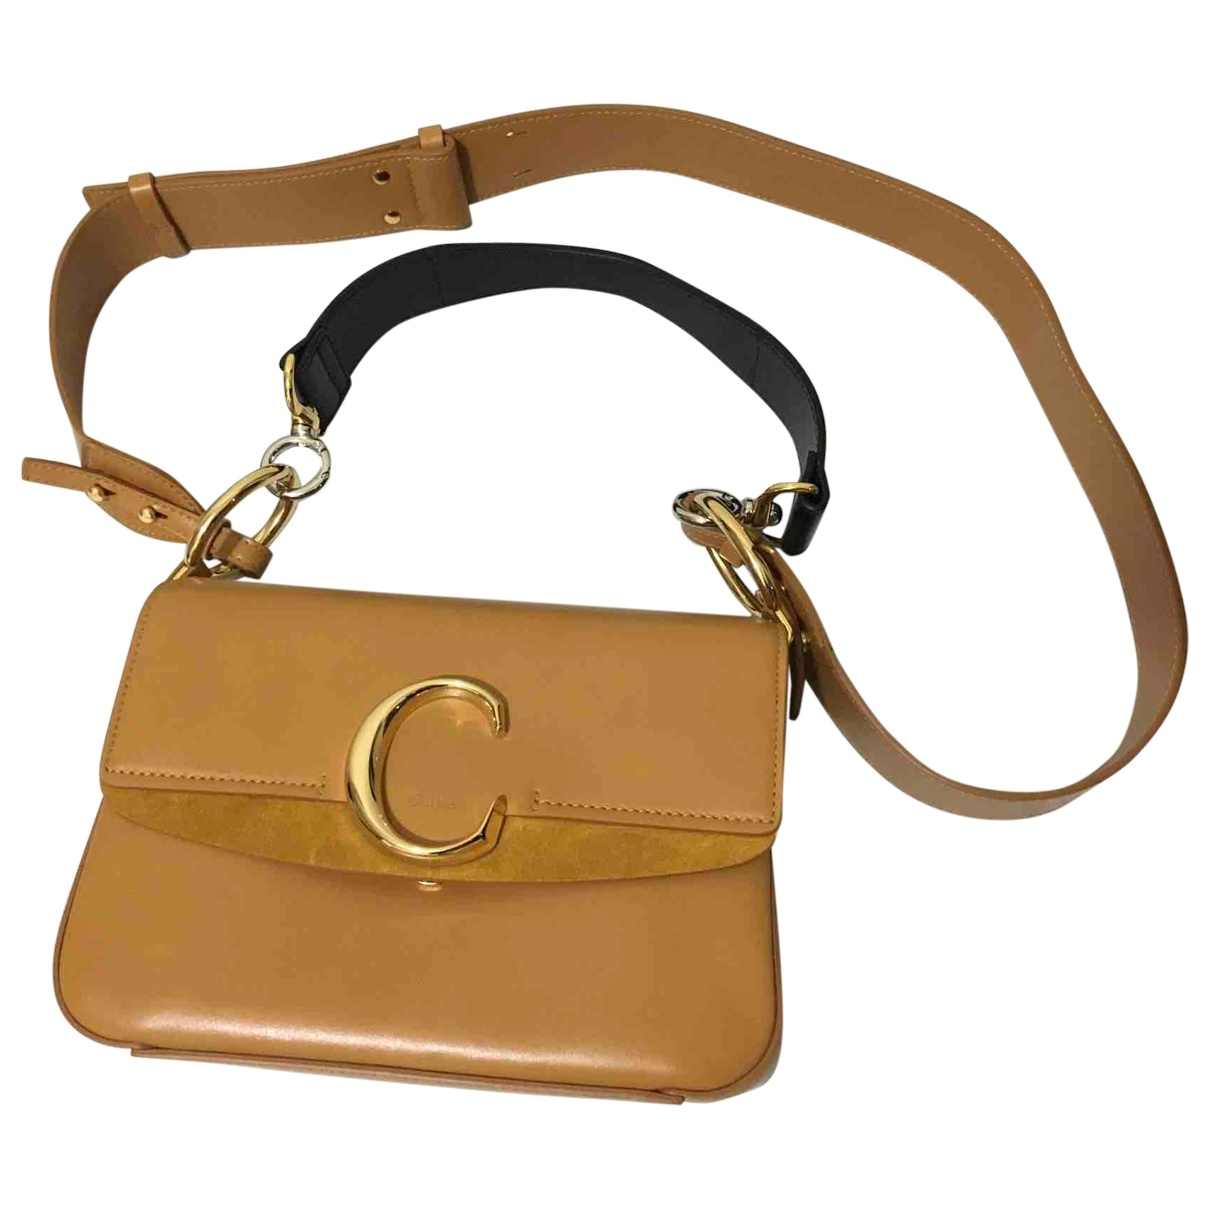 Chloé C Orange Leather handbag for Women \N